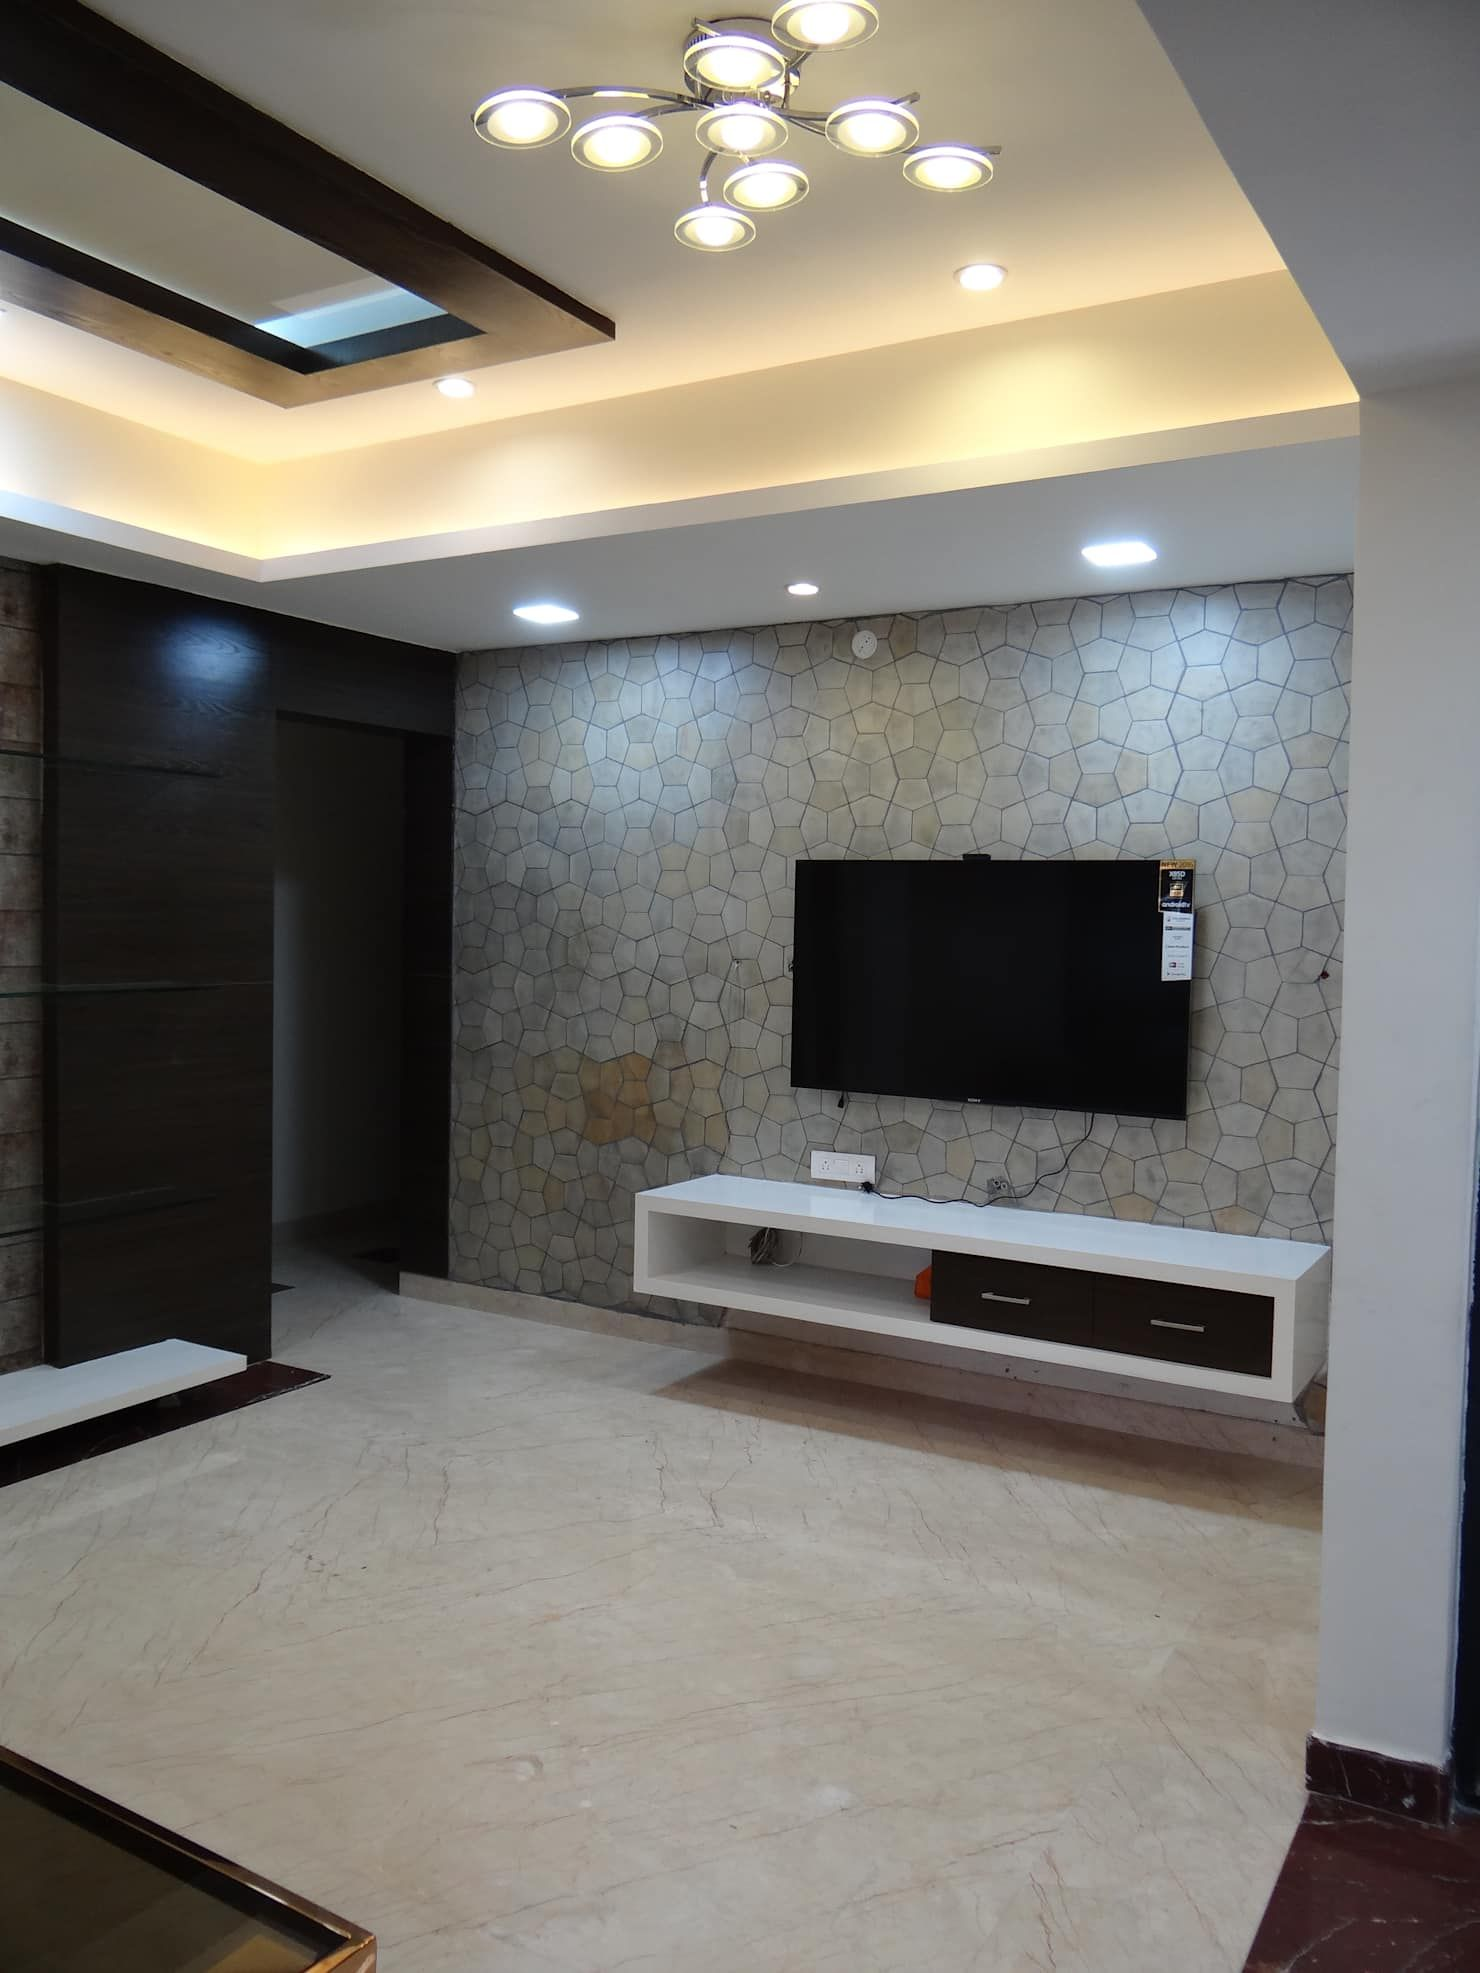 Tv Unit In Living Room: Tv Wall Cabinet With Stone Cladding Background Modern